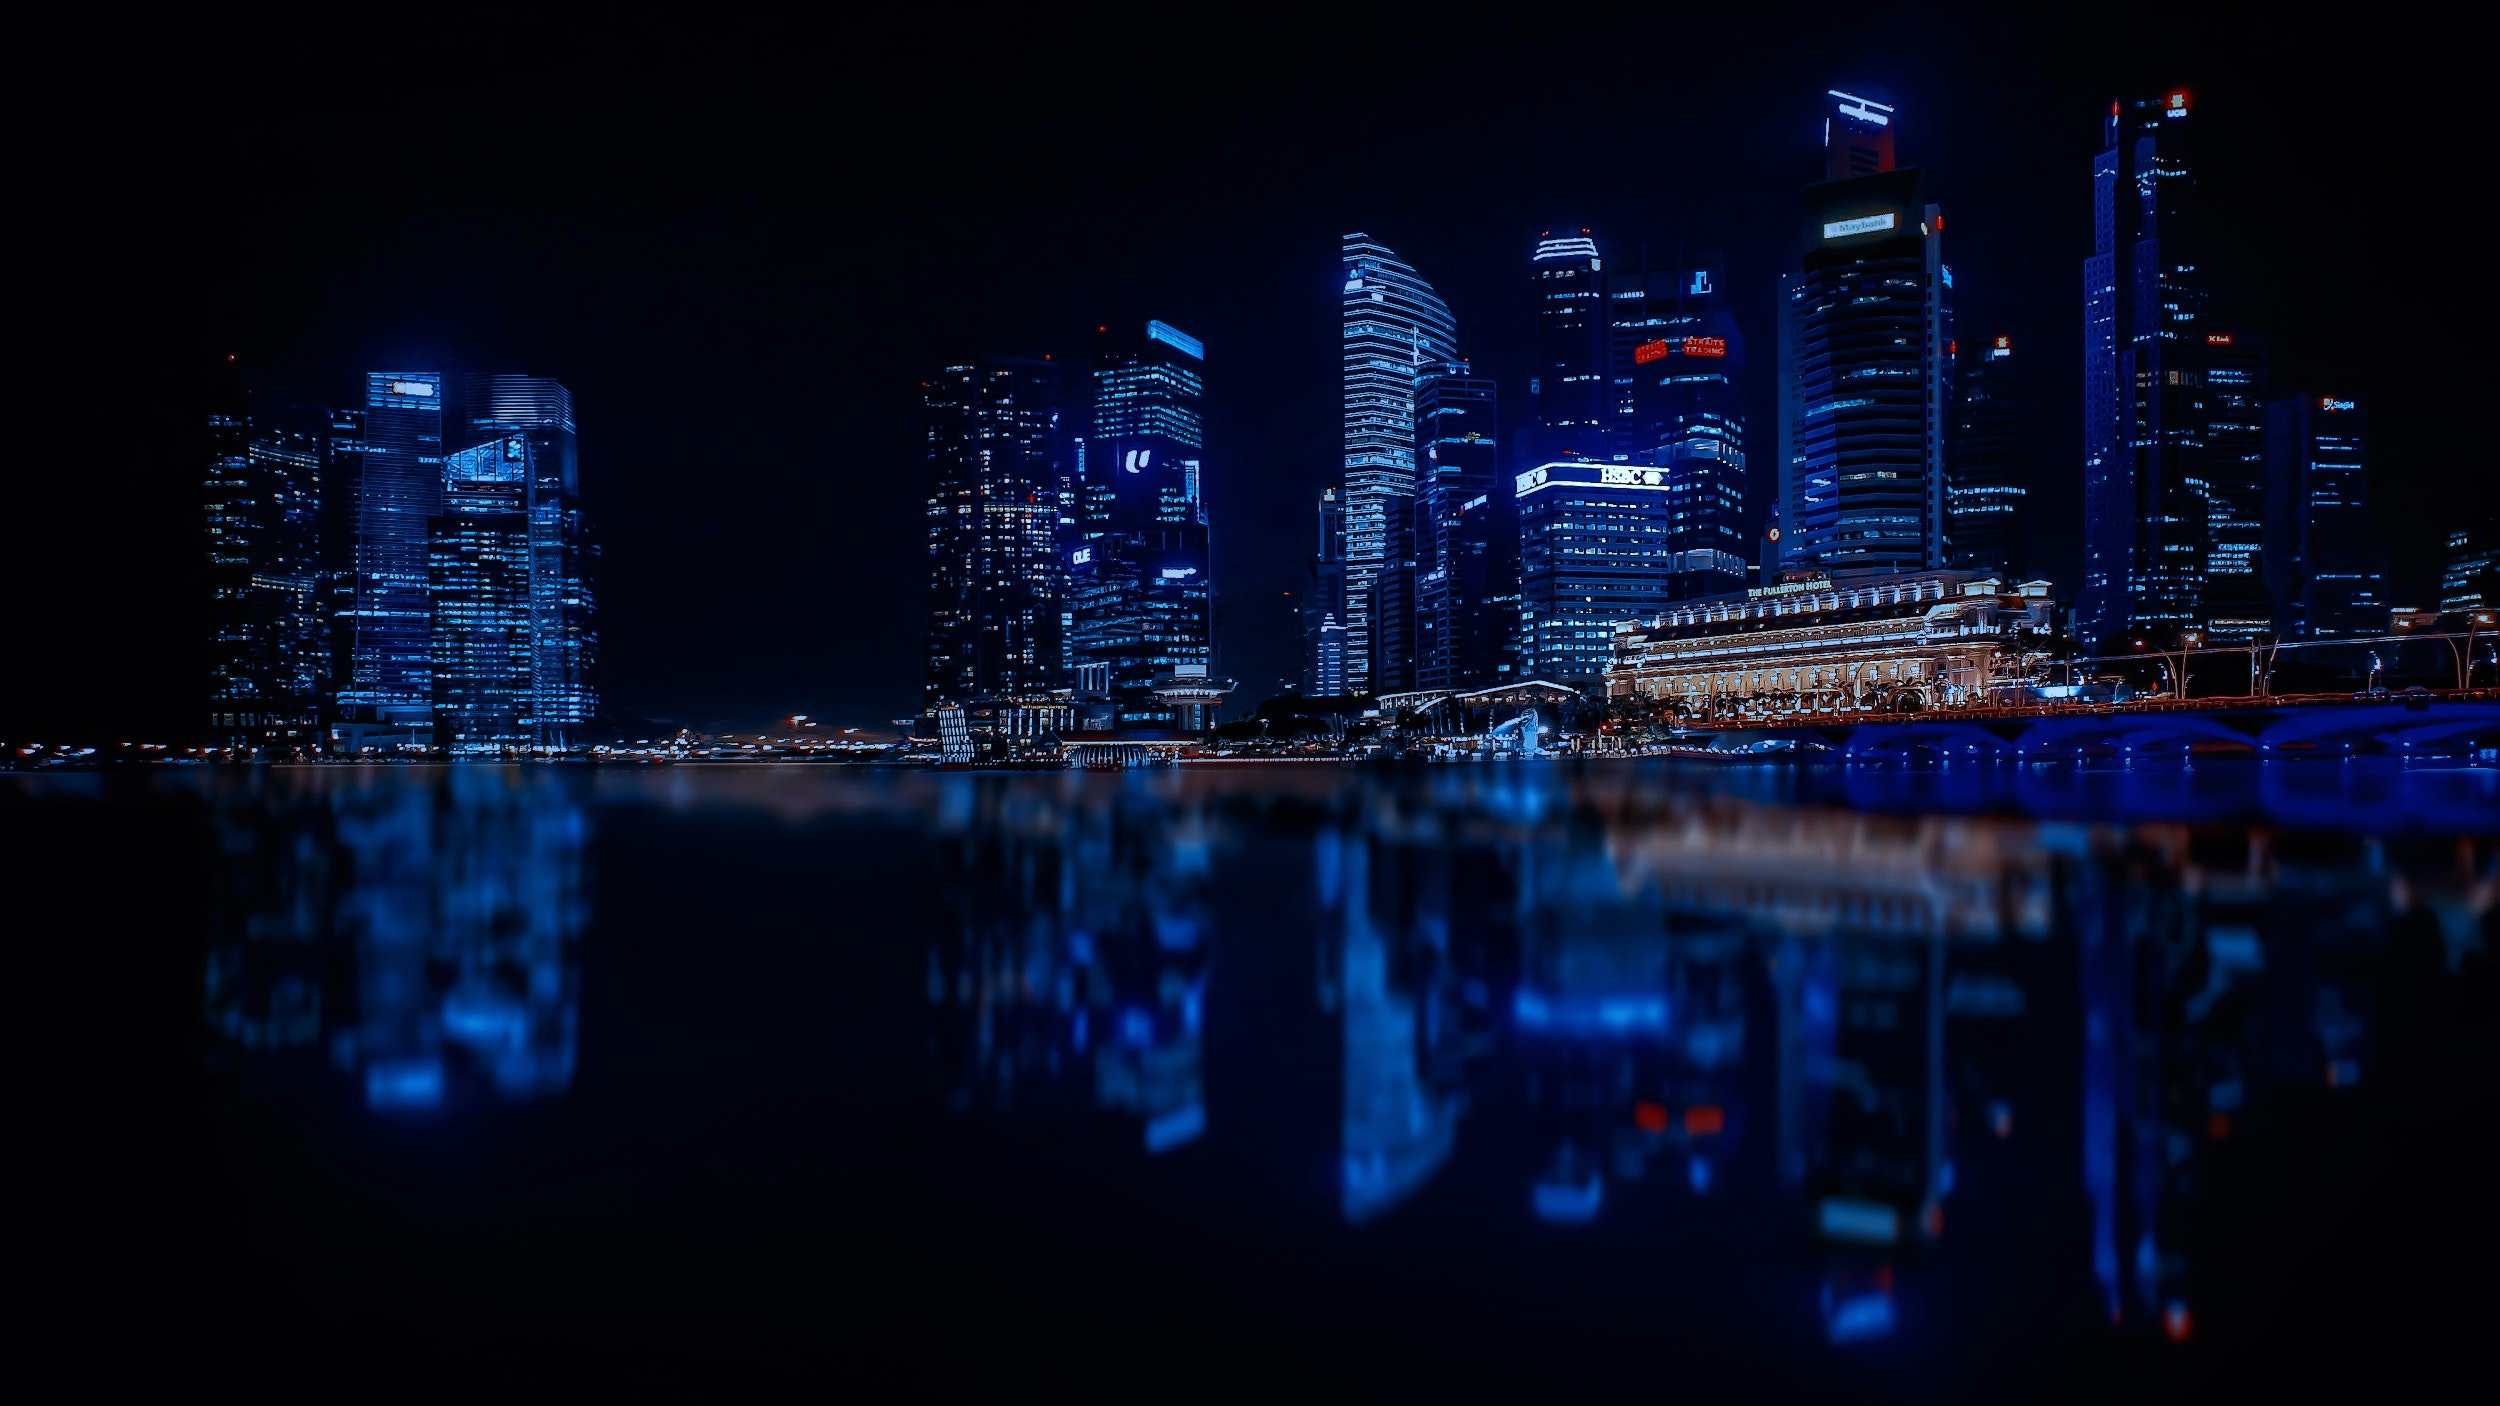 Illuminated Cityscape Against Blue Sky at Night, Skyscrapers, Offices, Outdoors, Pier, HQ Photo